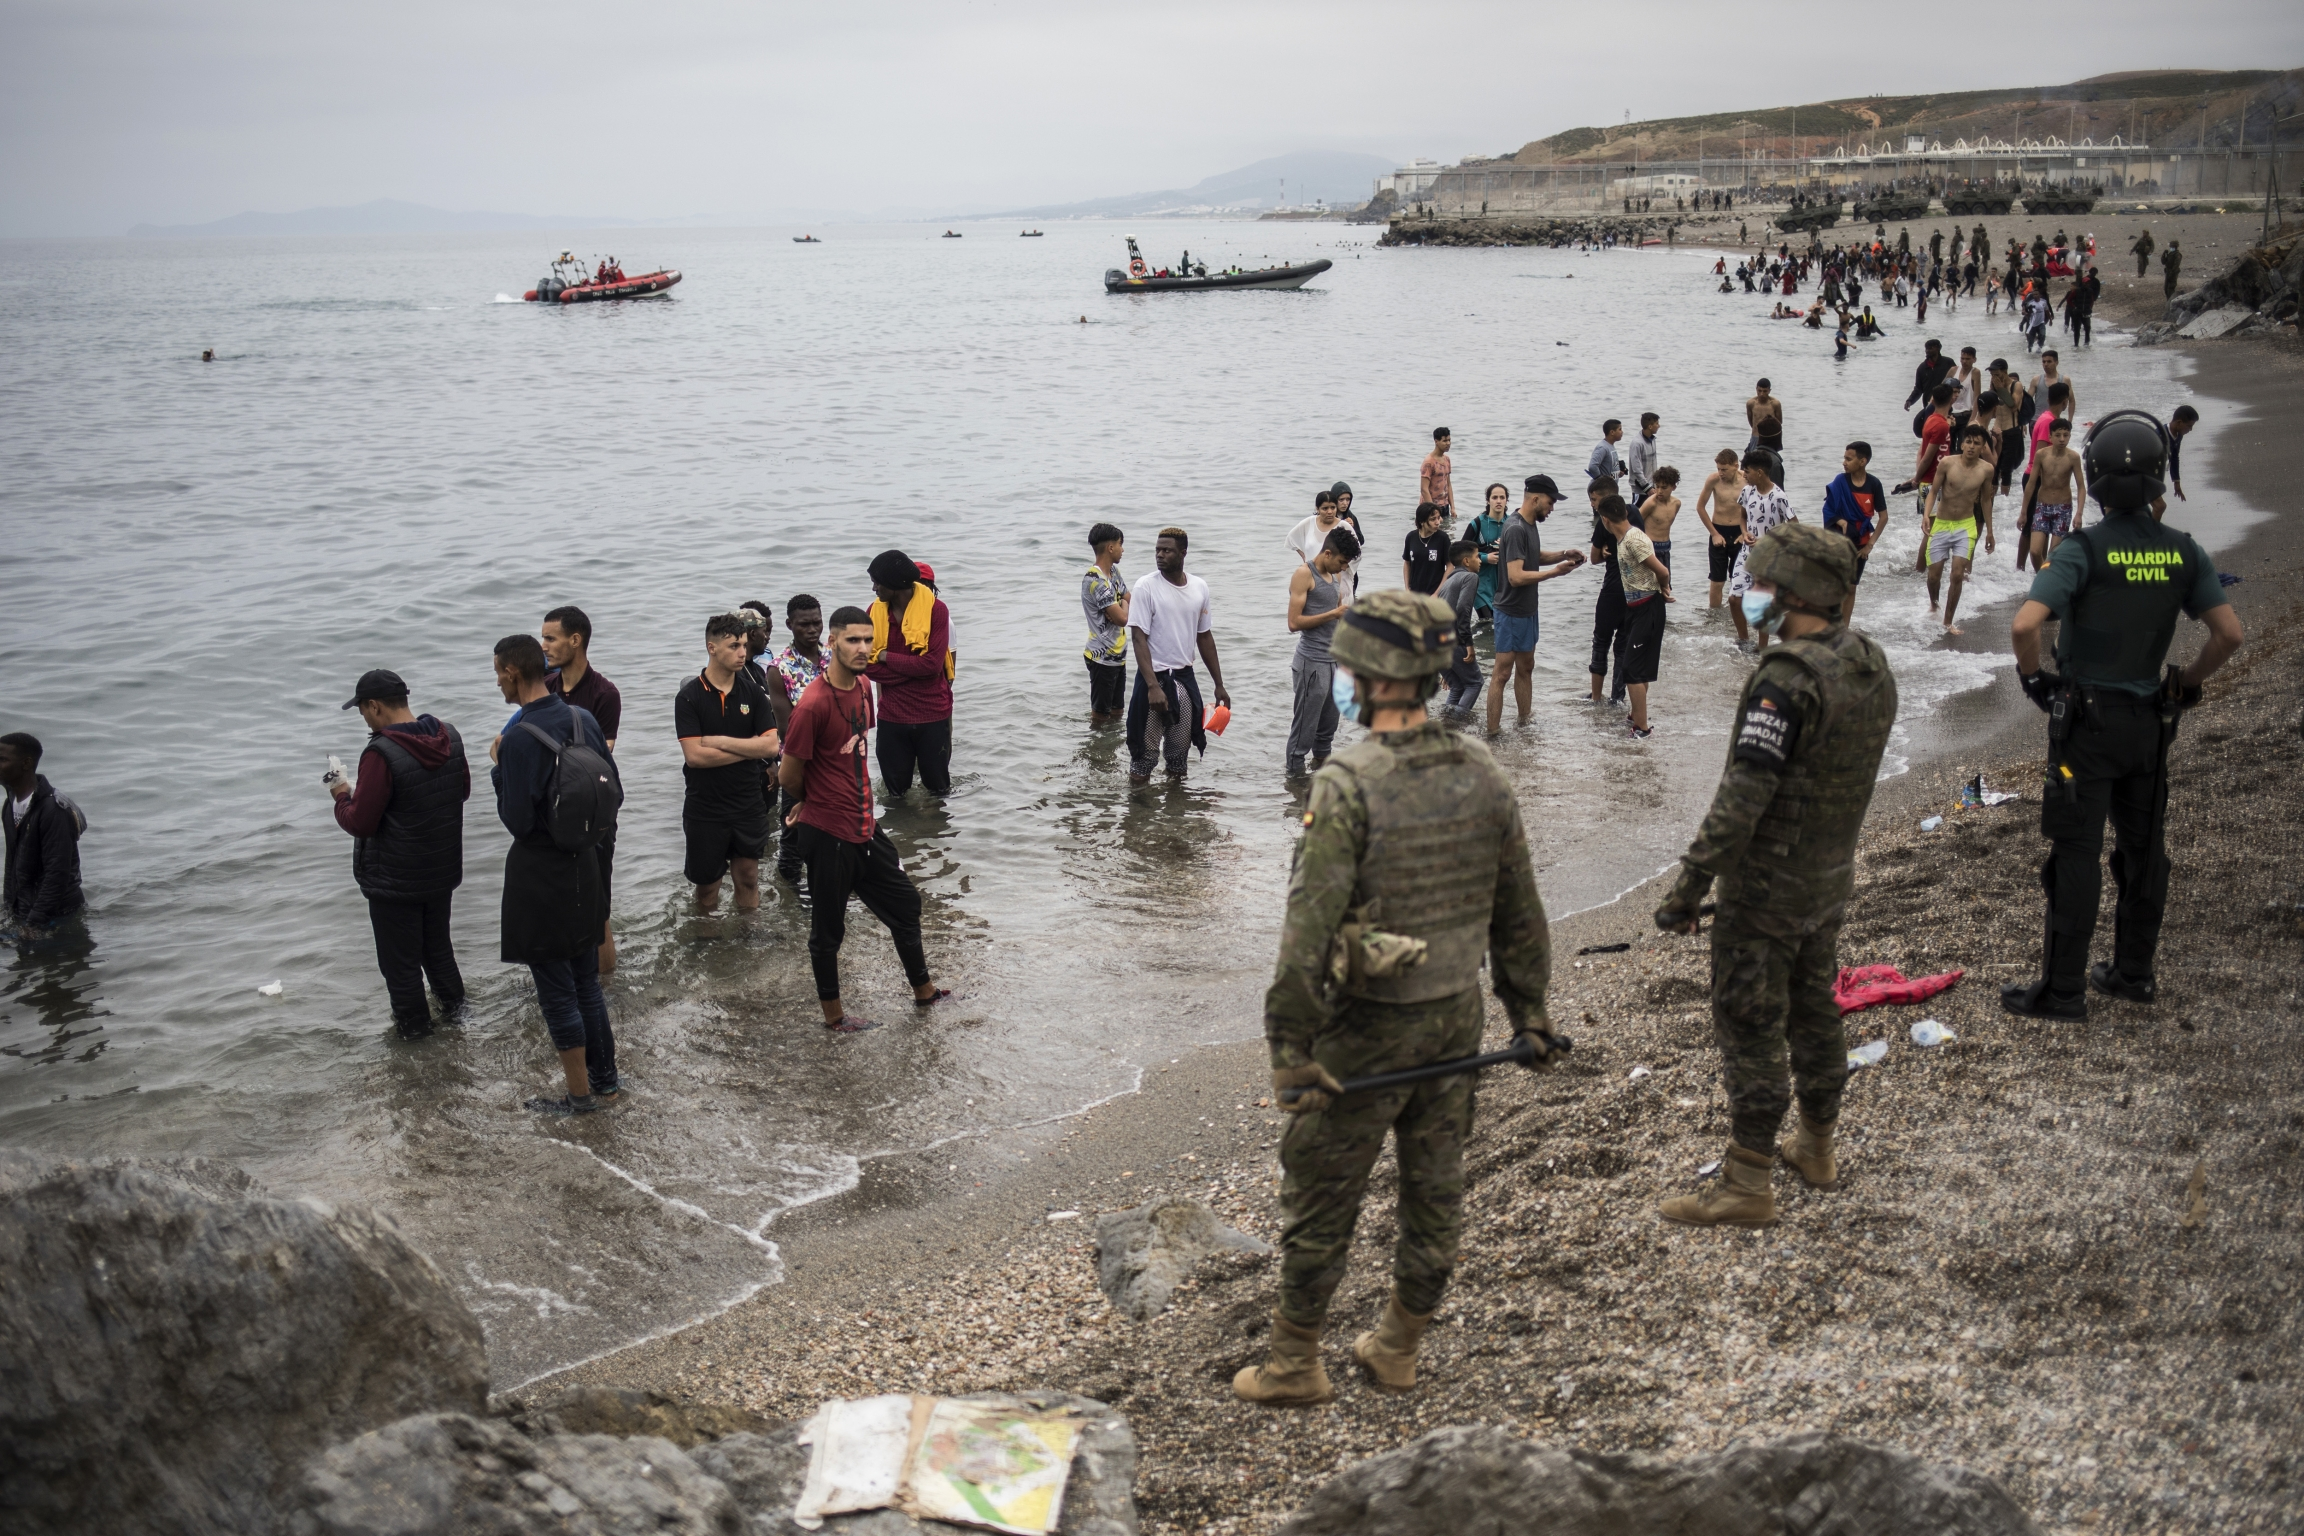 People mainly from Morocco stand on the shore as the Spanish Army cordons off the area at the border of Morocco and Spain, at the Spanish enclave of Ceuta, May 18, 2021.